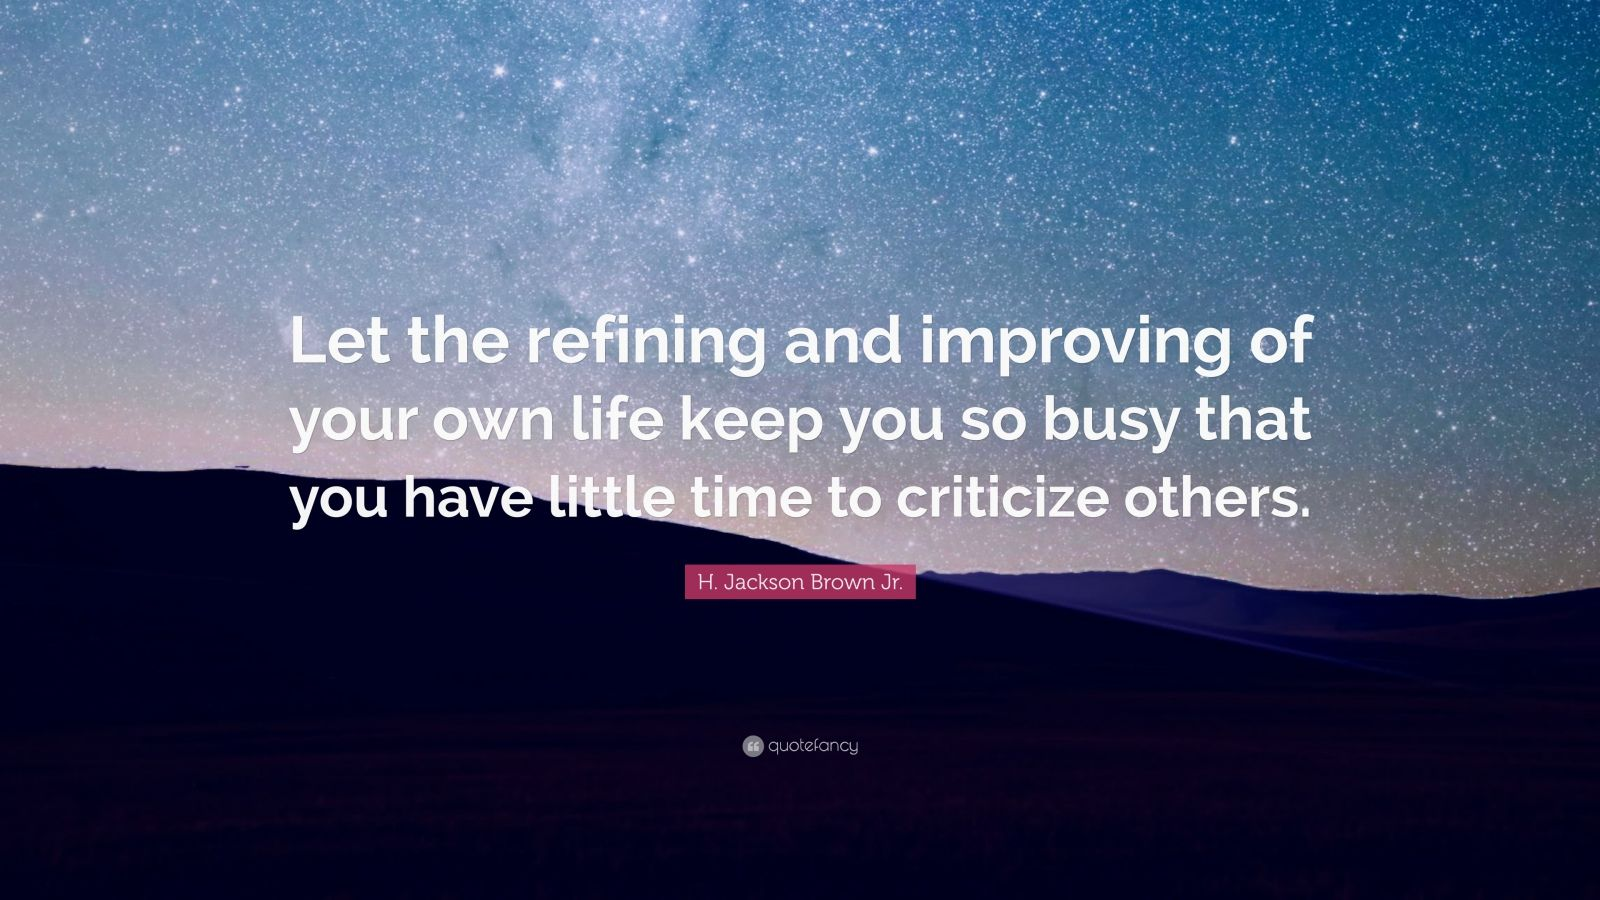 """H. Jackson Brown Jr. Quote: """"Let the refining and improving of your own life keep you so busy that you have little time to criticize others."""""""